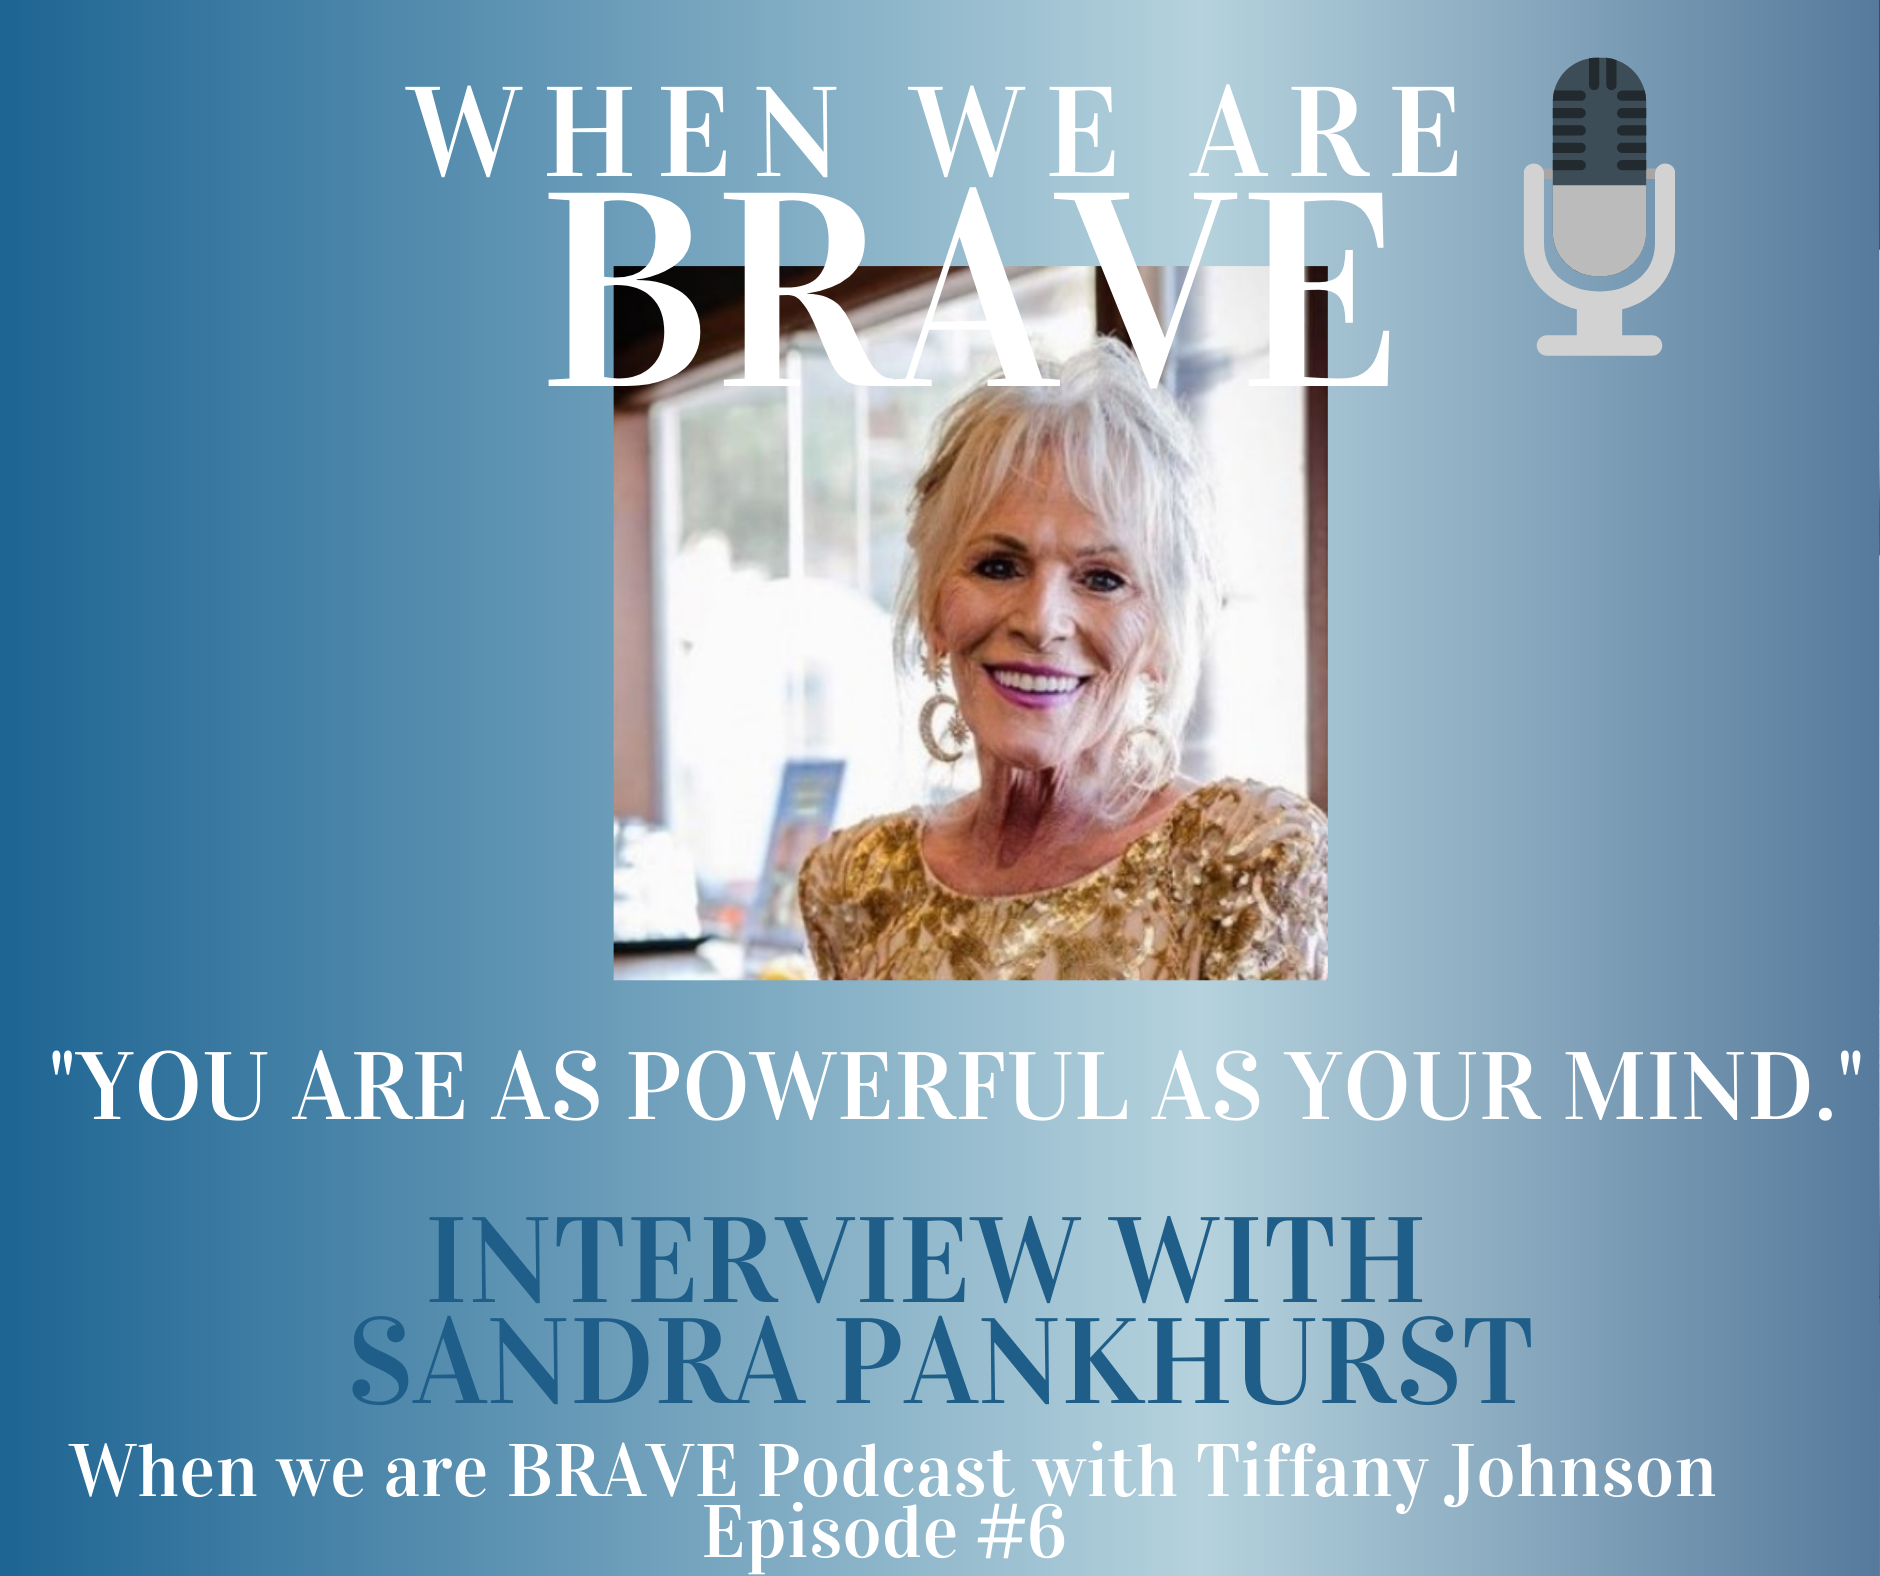 Sandra Pankhurst to about living your truth and being brave with Tiffany Johnson